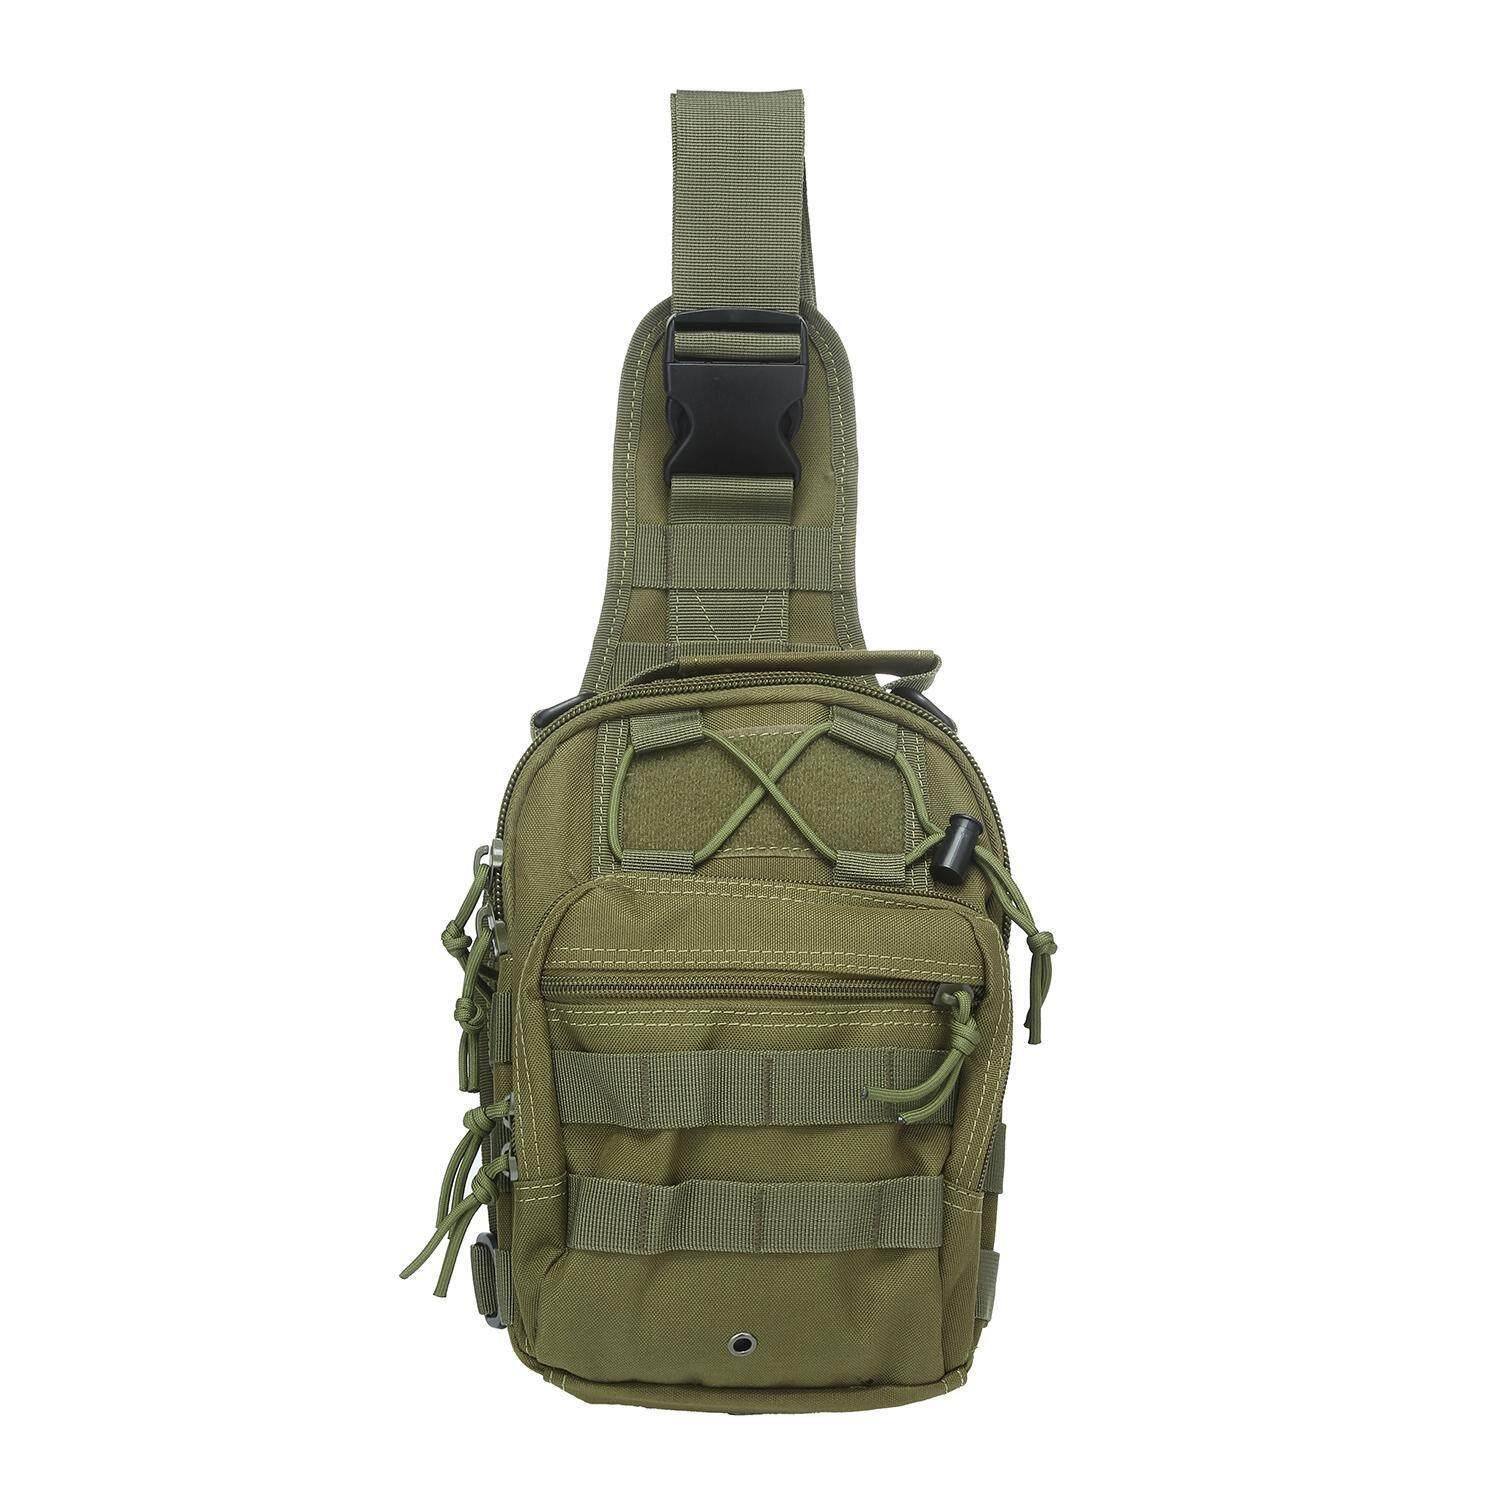 Kobwa Outdoor Tactical Backpack, Canvas Shoulder Sling Backpack Chest Deployment Bags For Camping,hiking,trekking,rover Sling Pack Chest Pack - Army Green - Intl By Kobwa Direct.